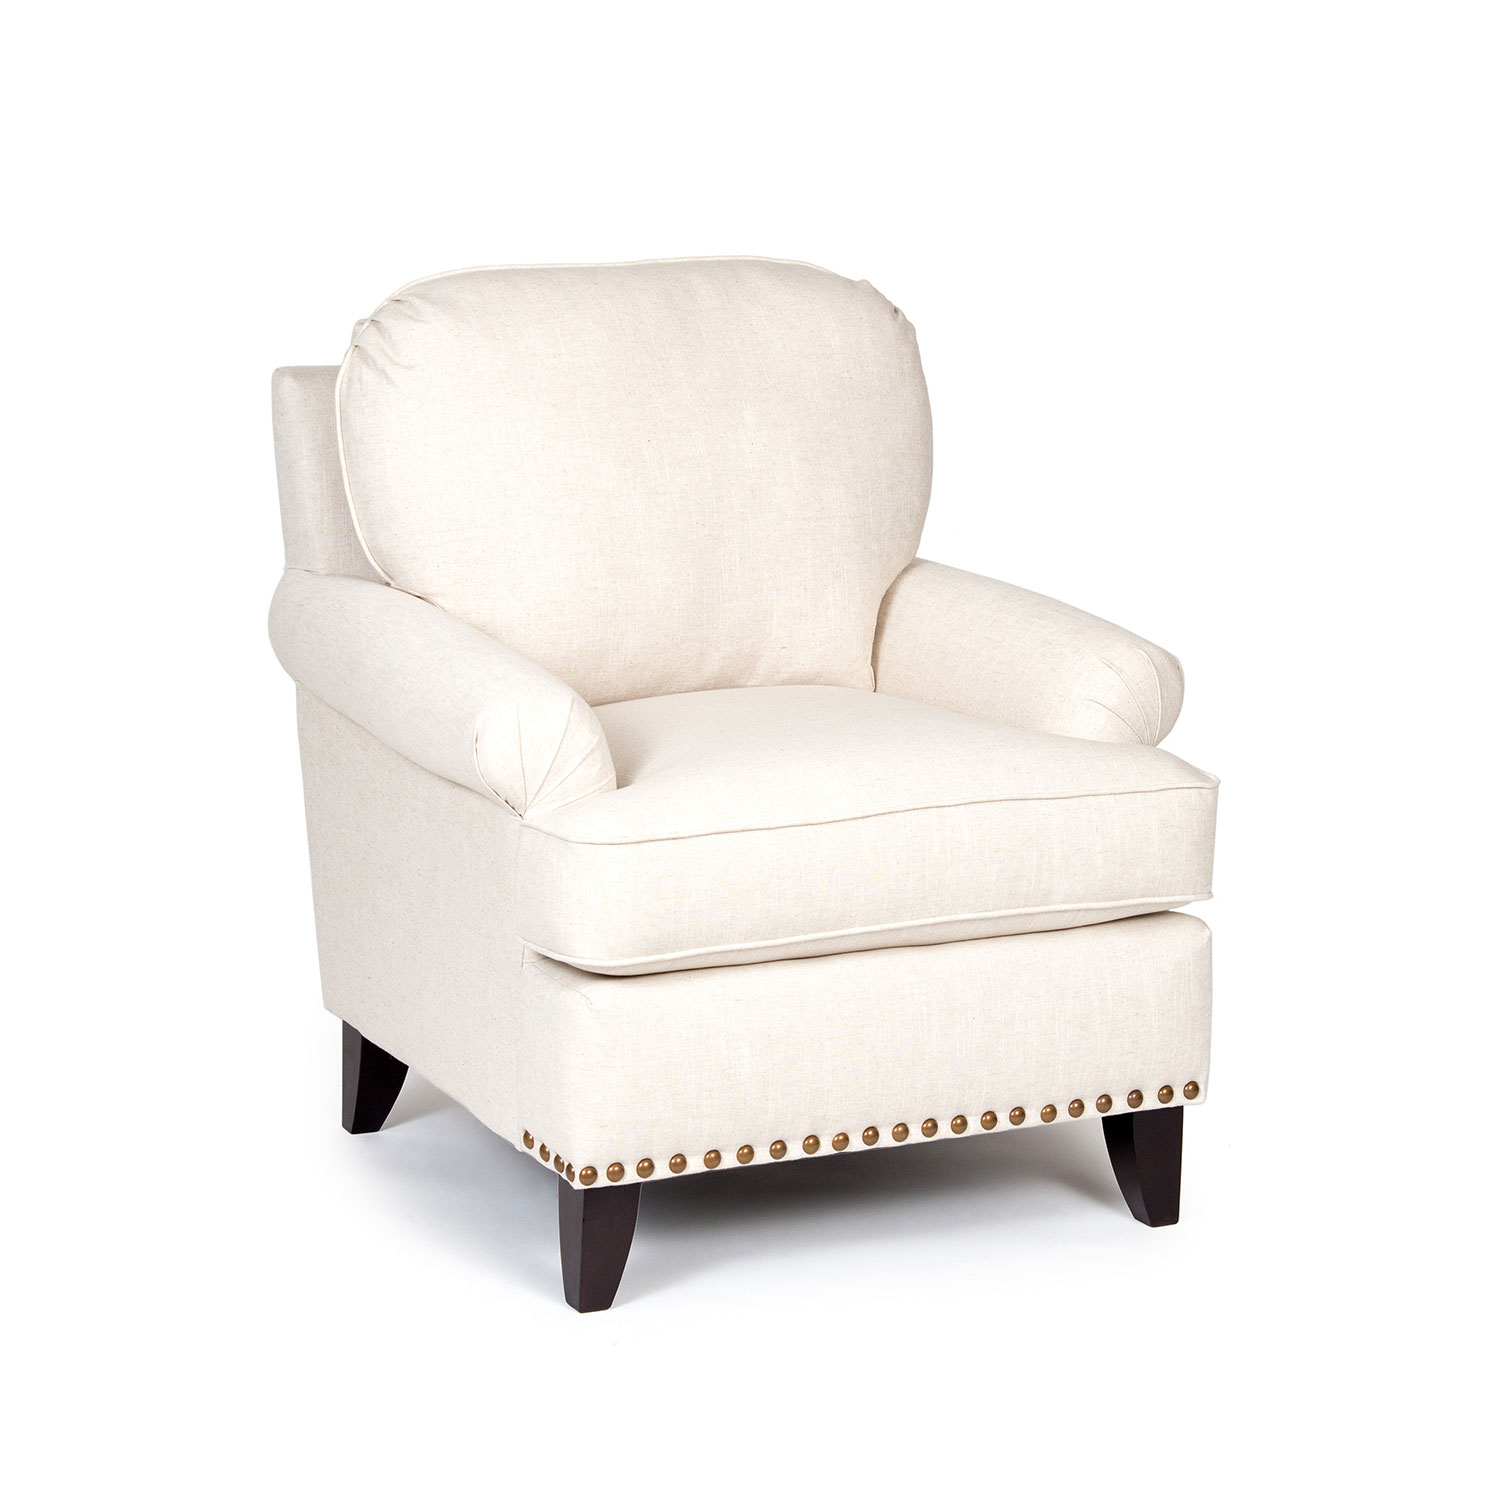 Chelsea Home Jed Accent Chair - Narural